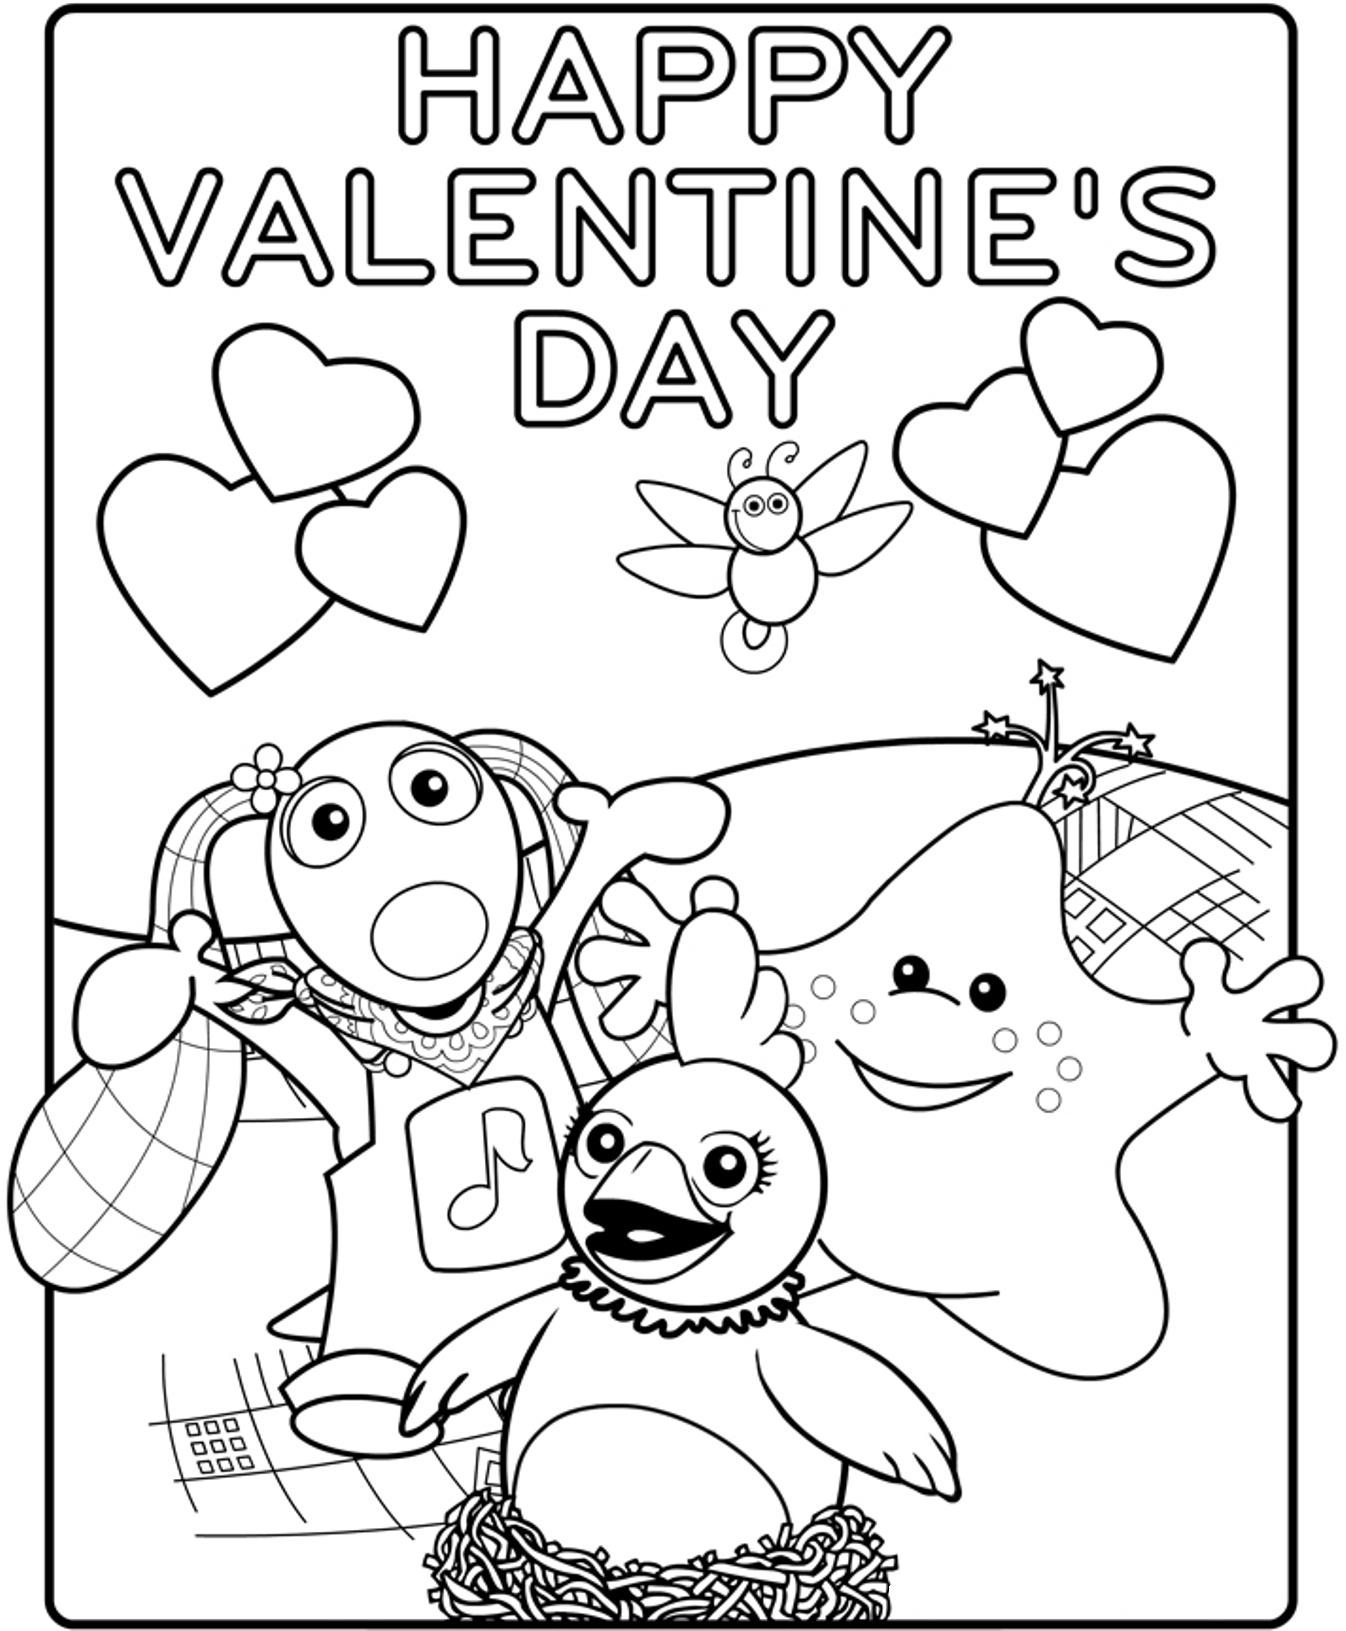 valentine day color pages valentine39s day coloring pages free printable valentine39s color valentine day pages